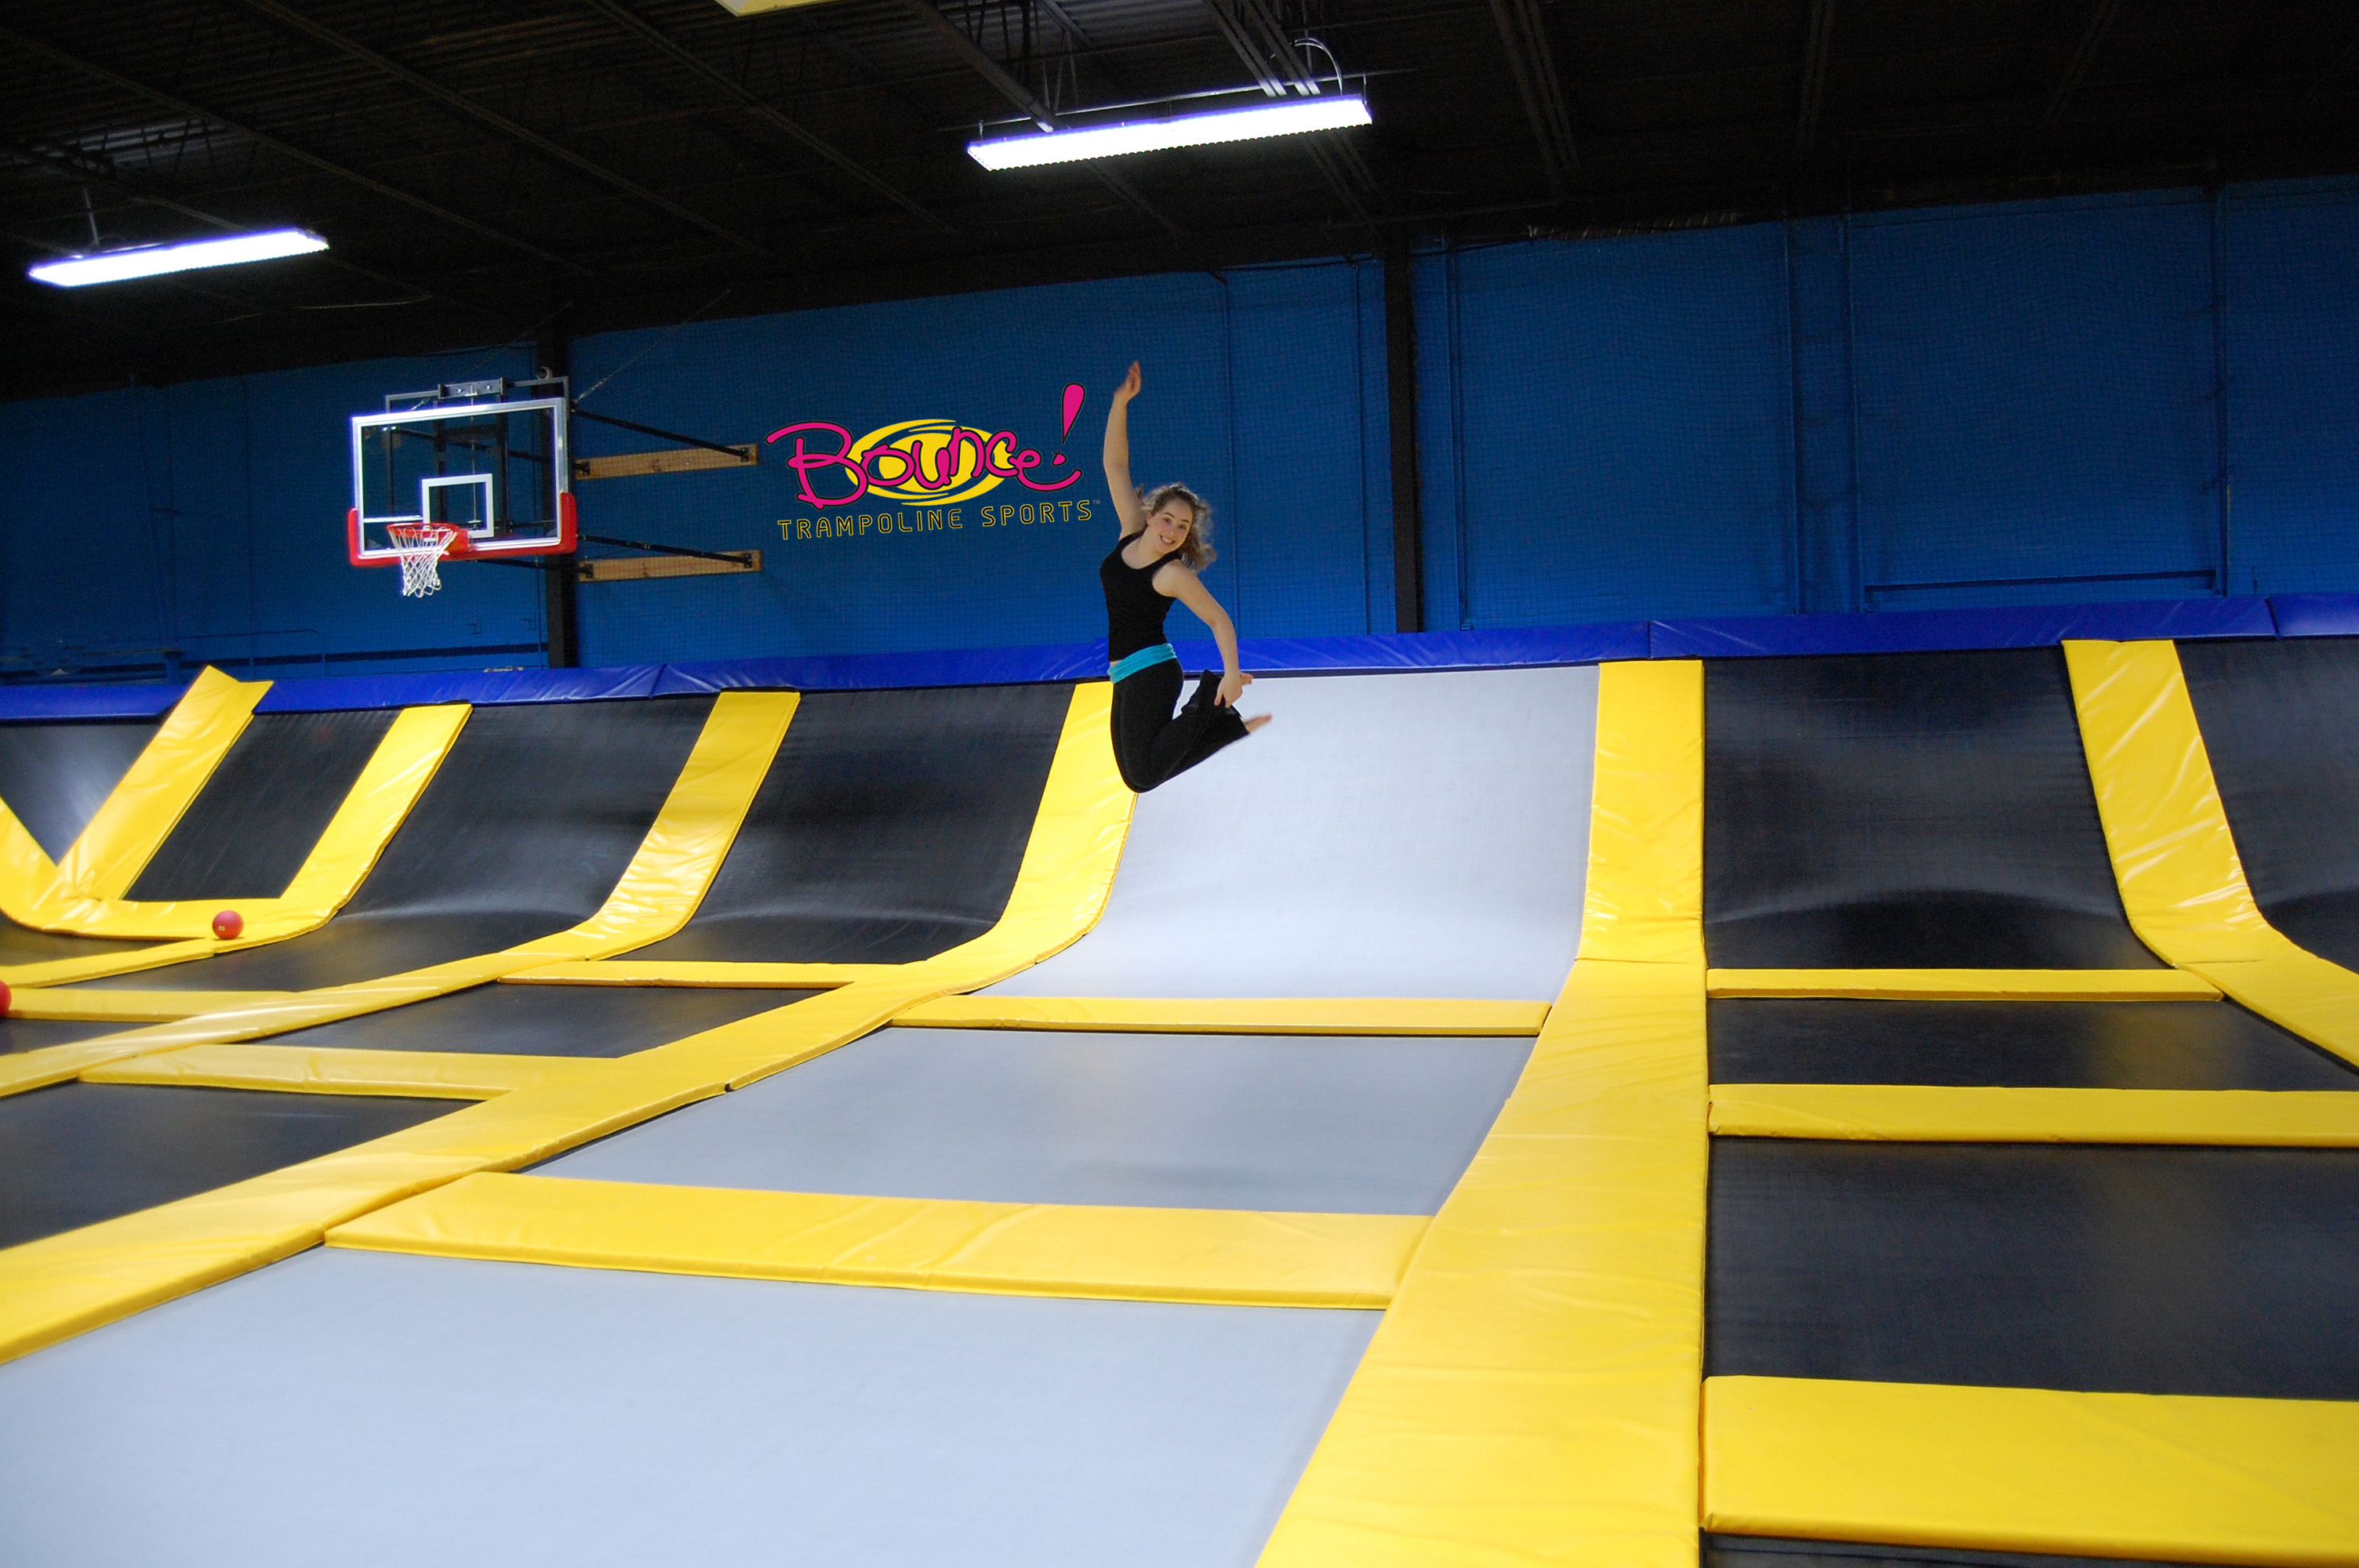 Bounce Trampoline Sports Grand Opening Will Benefit Four Area Charities New Facility Co Created By China Club S Danny Fried To Open In Rockland County Nov 5